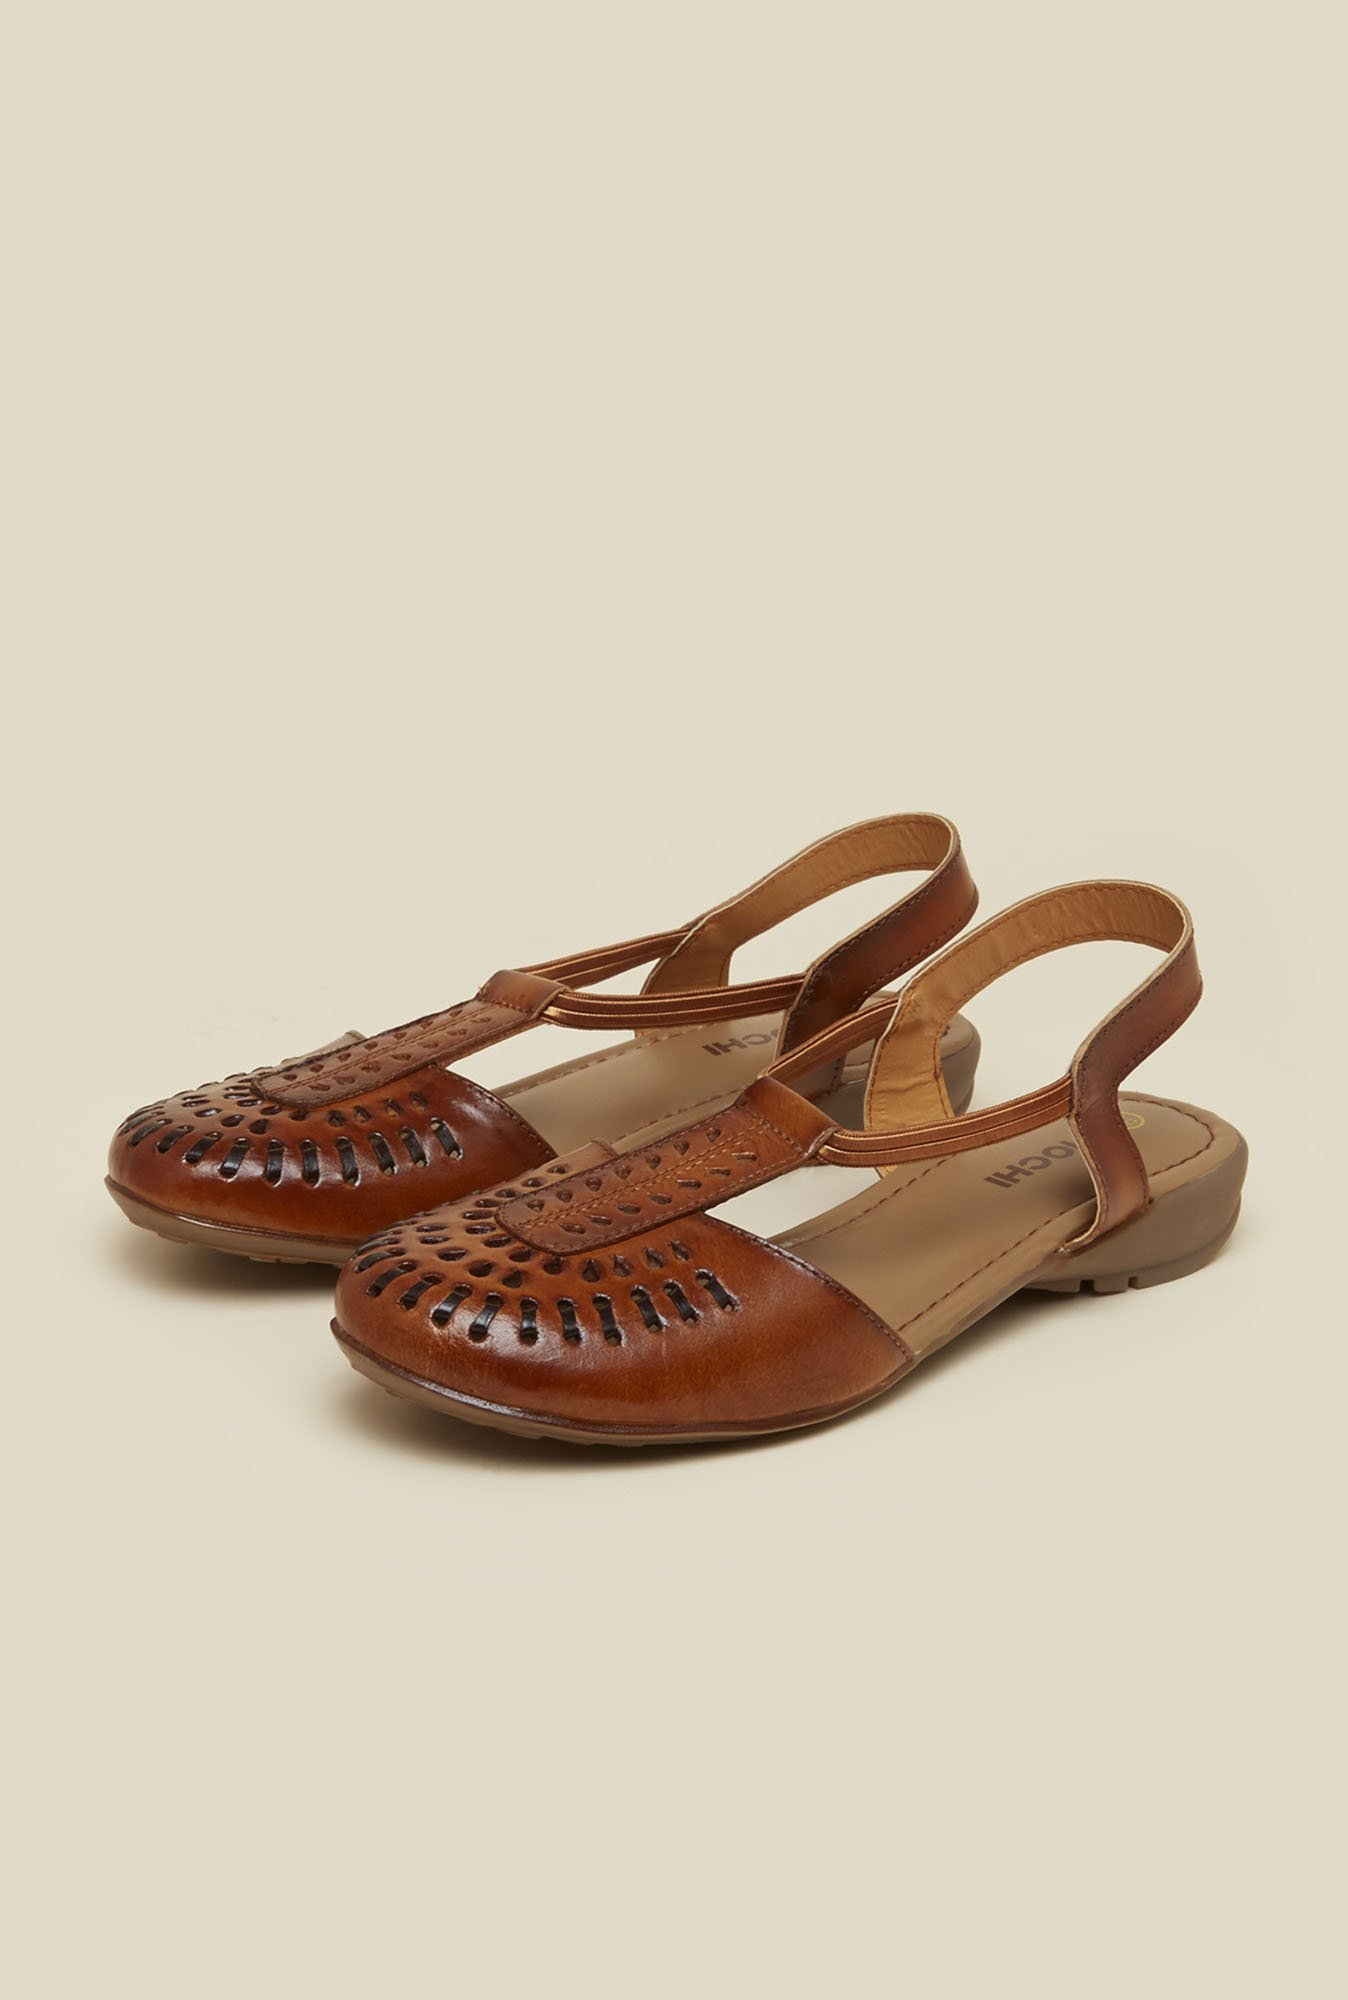 Mochi Walnut Brown Flat Sandals